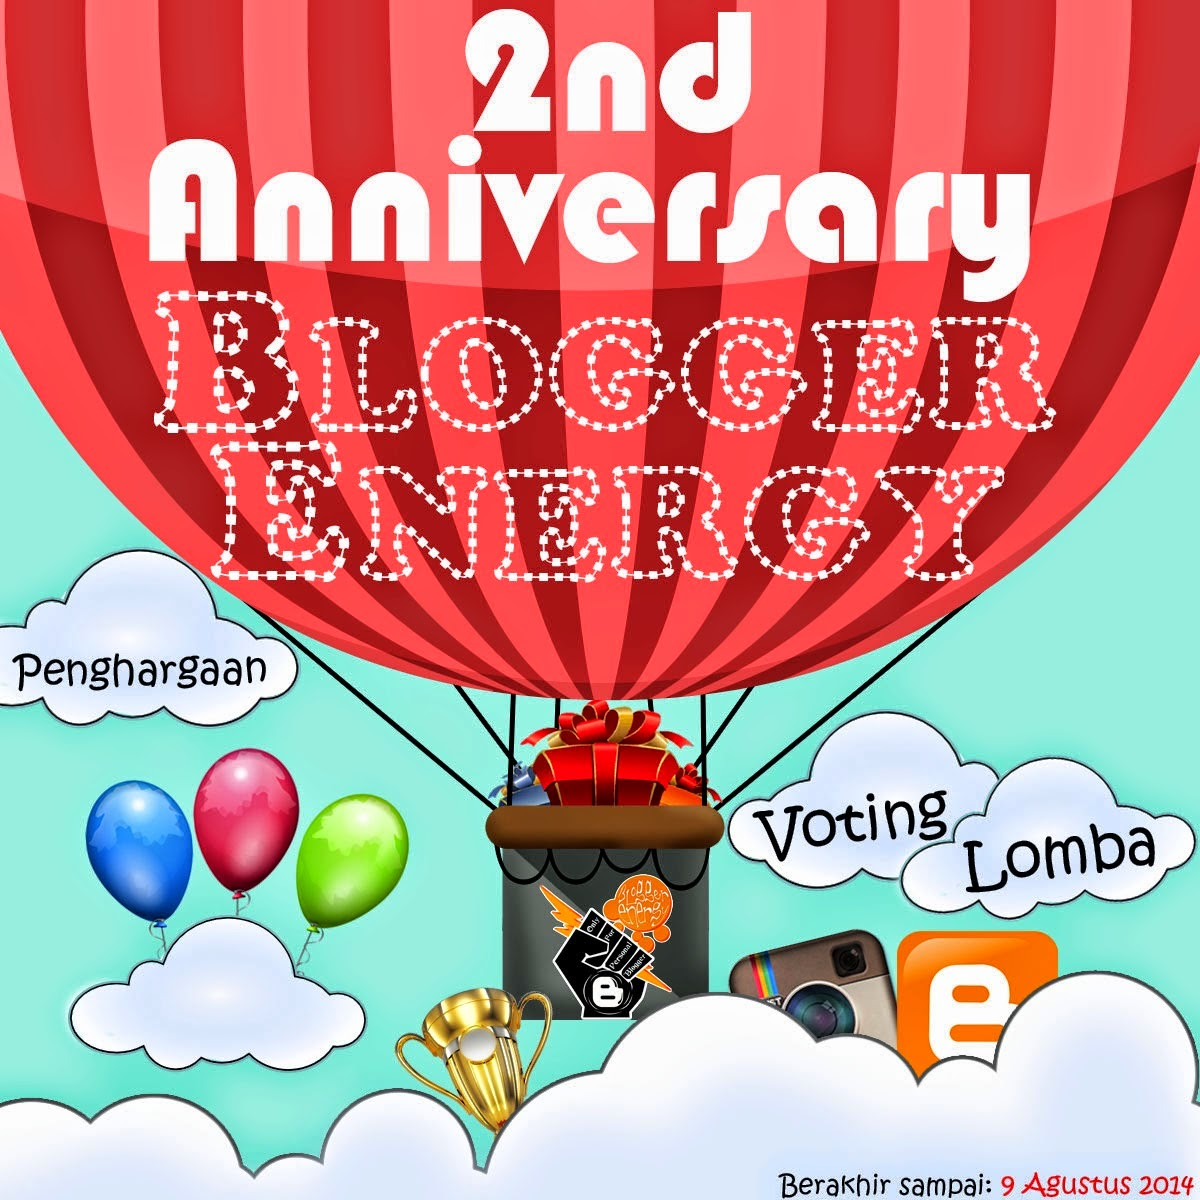 http://www.bloggerenergy.com/2014/07/2nd-anniversary-blogger-energy.html